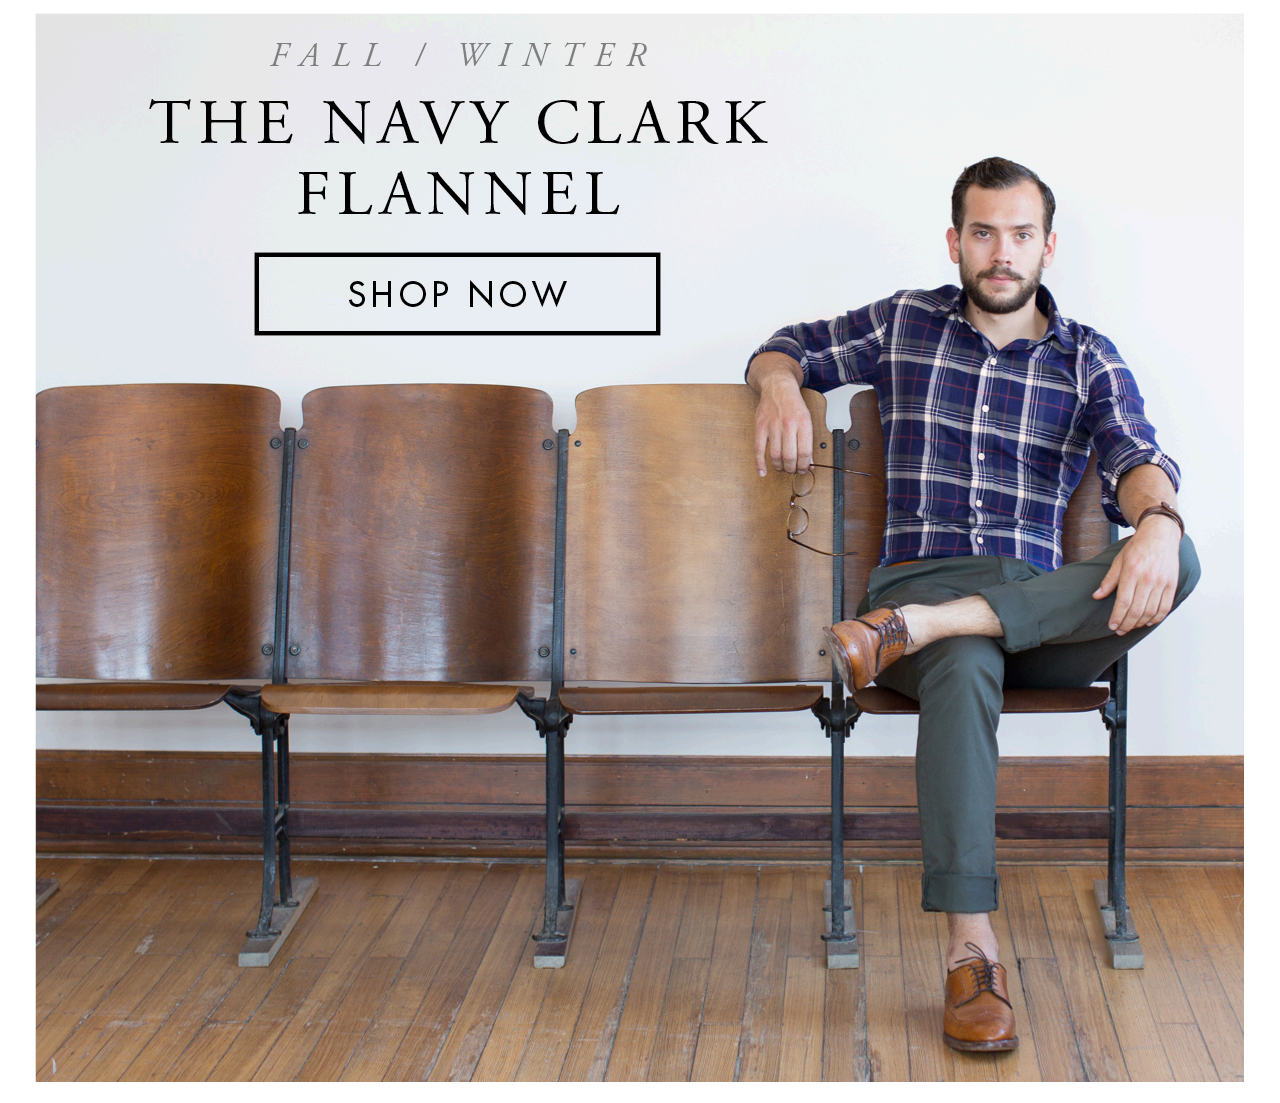 The Navy Clark Flannel